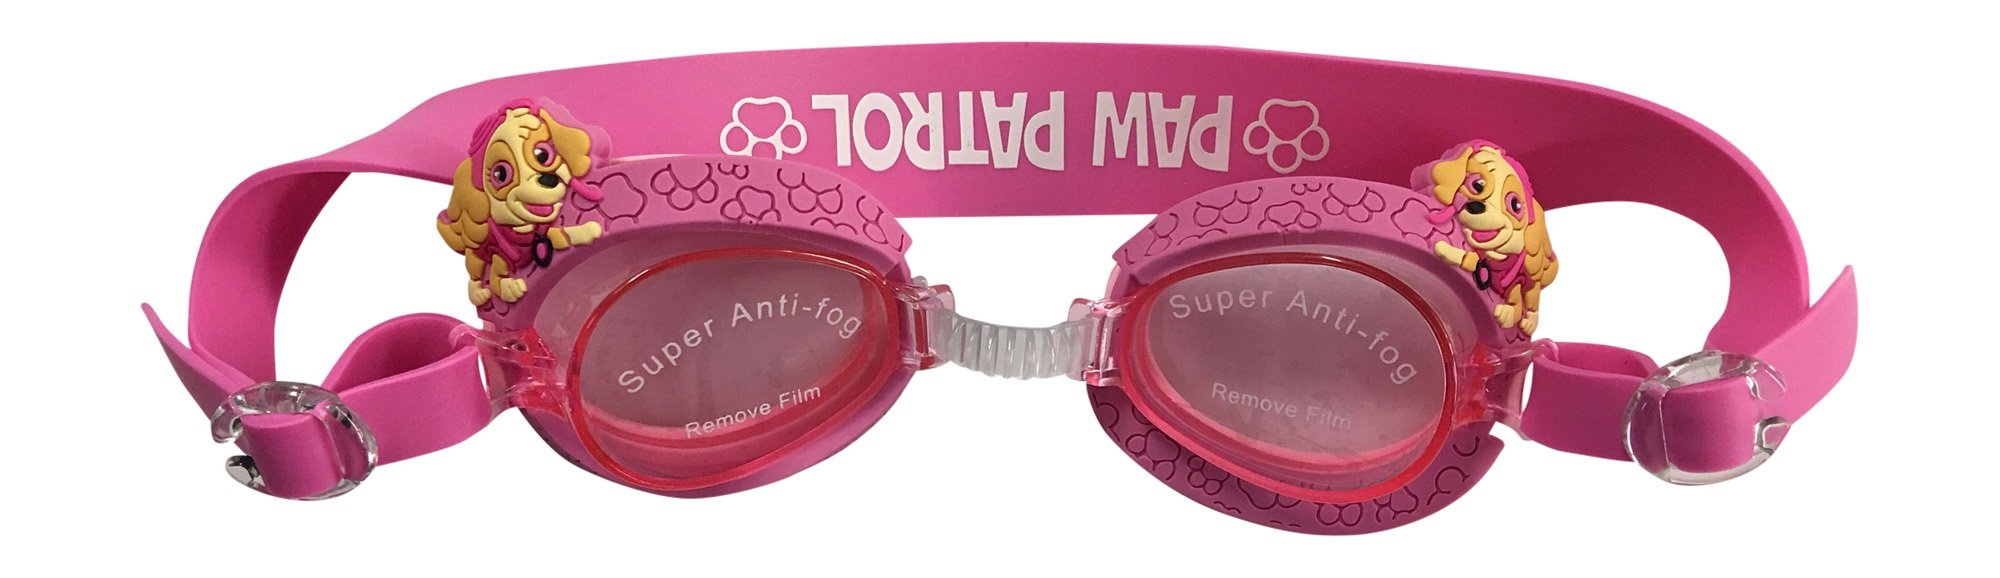 Girls Paw Patrol Swimming Goggles with Travel case by Nickelodeon